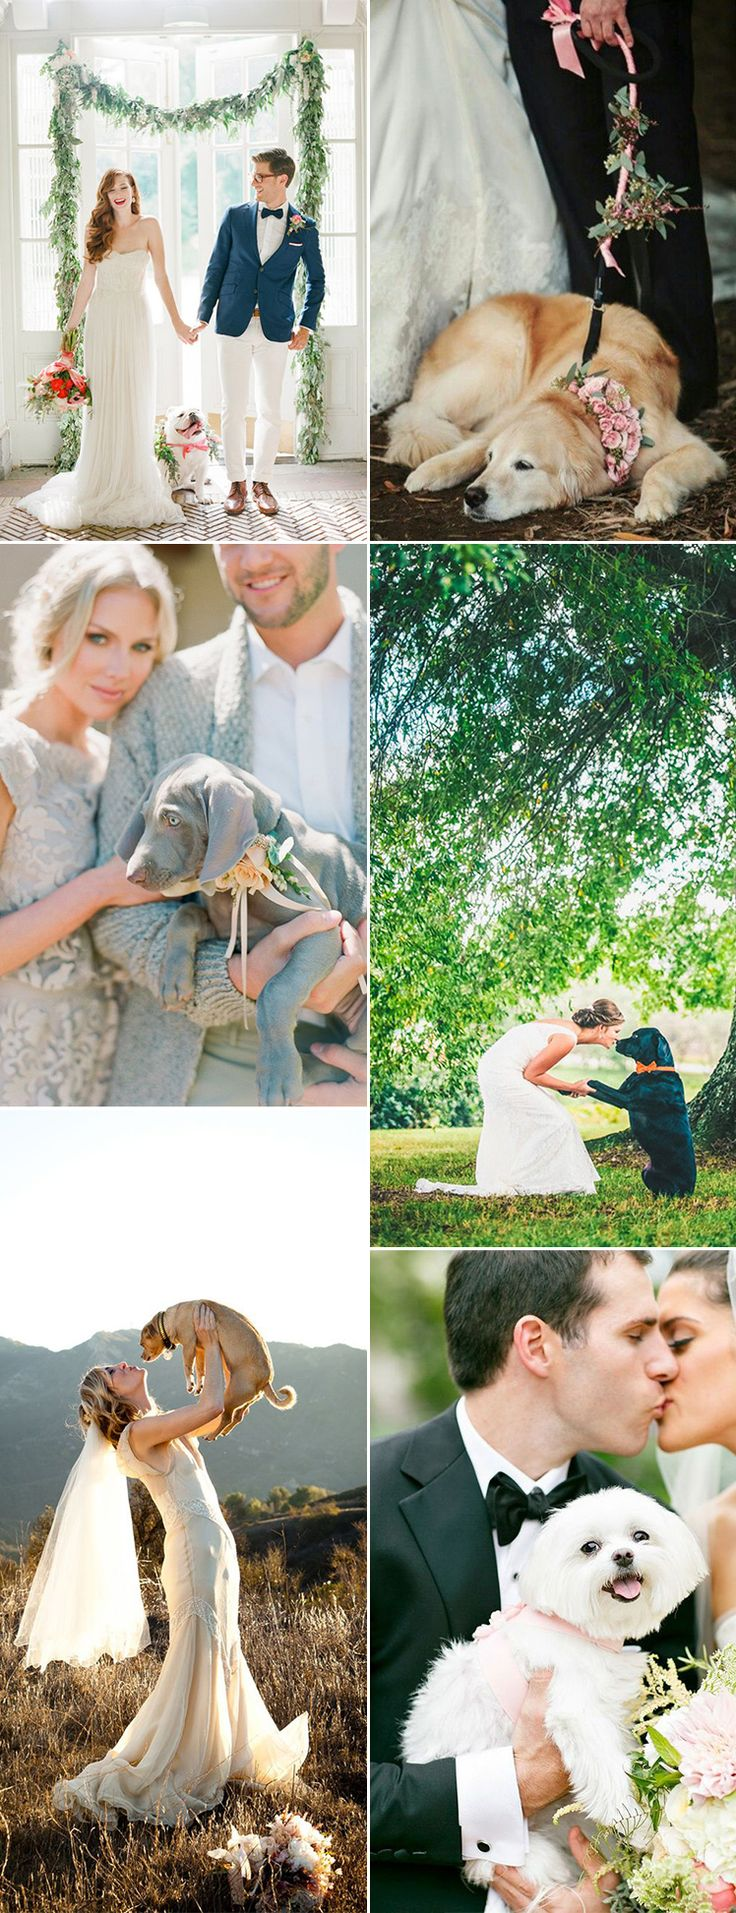 Include your beloved dog in your wedding day plans - GS Inspiration at Glitzy Secrets helps you with your plans